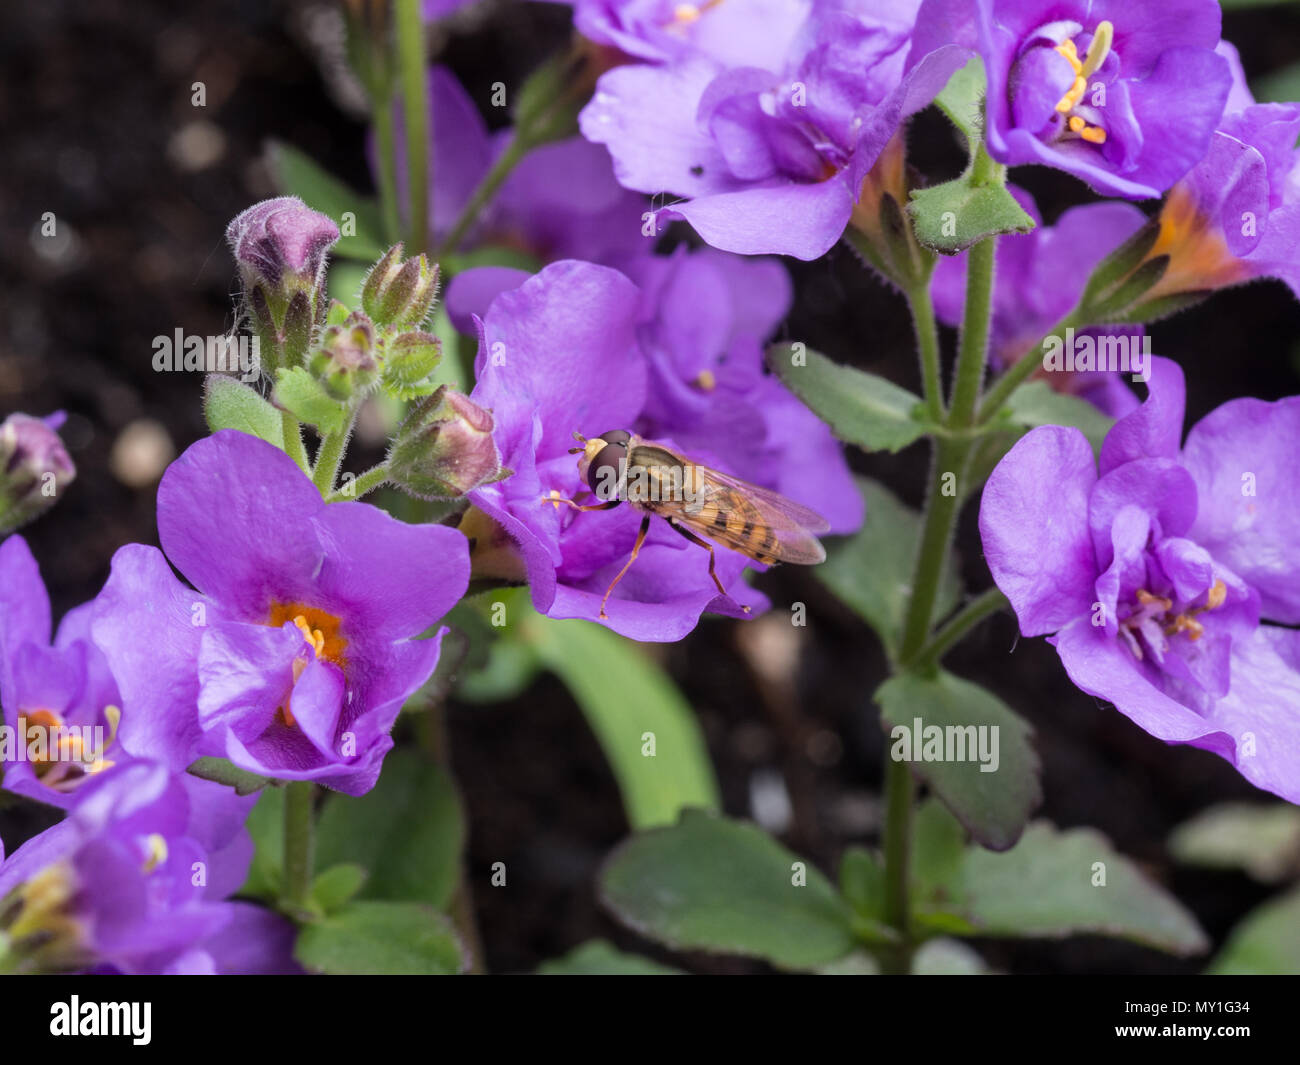 A common hoverfly Syrphus ribesii feeding on a flower of Bacopa Indigo Blue - Stock Image